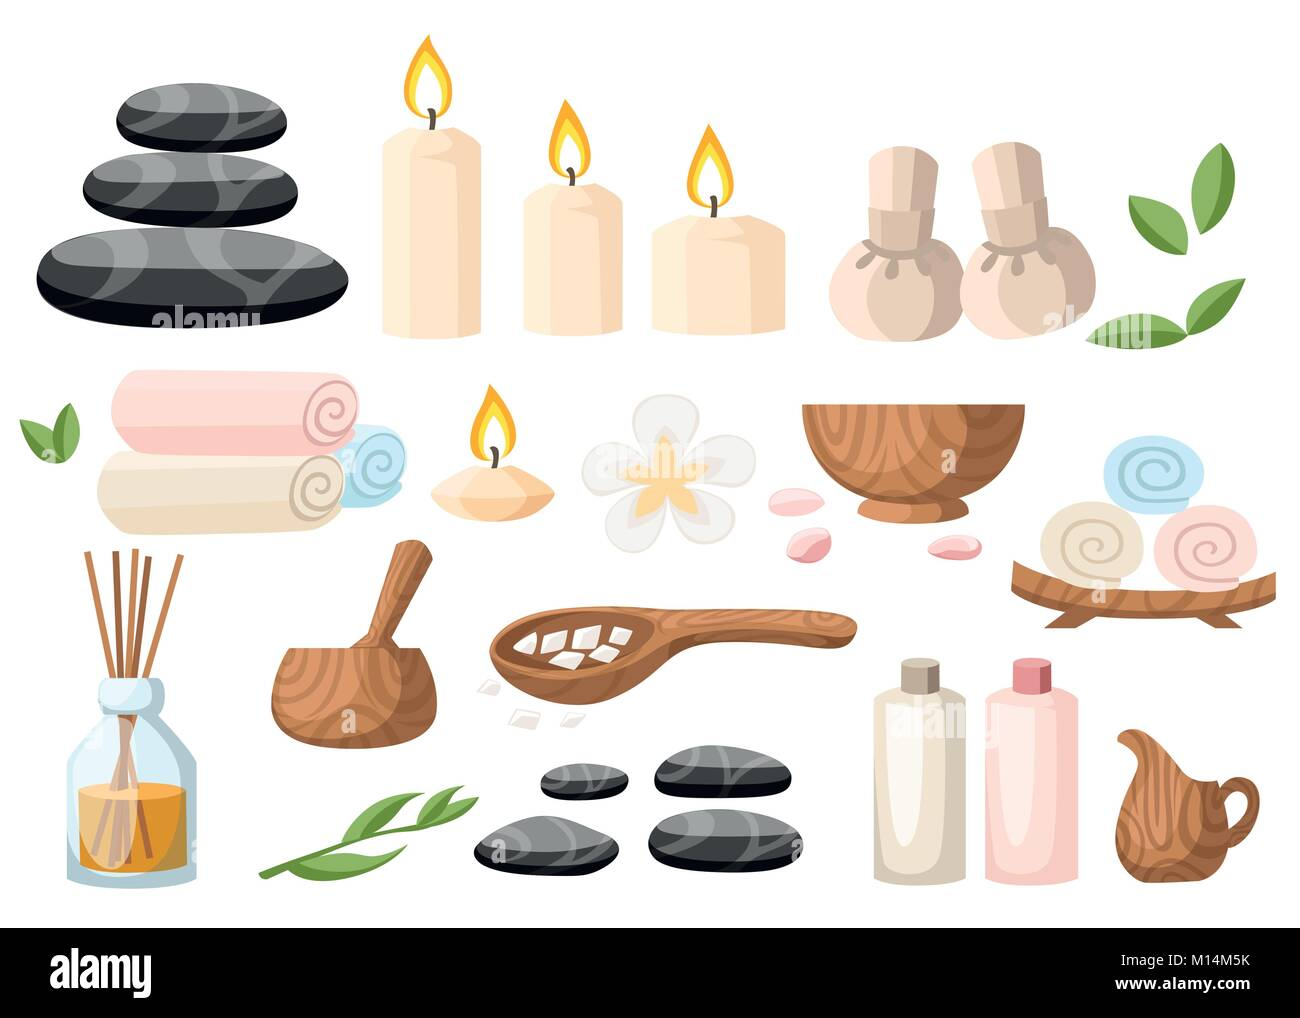 Colorfull spa tools and accessories black basalt massage stones herbs mortar rolled up towel oil gel and candles - Stock Vector